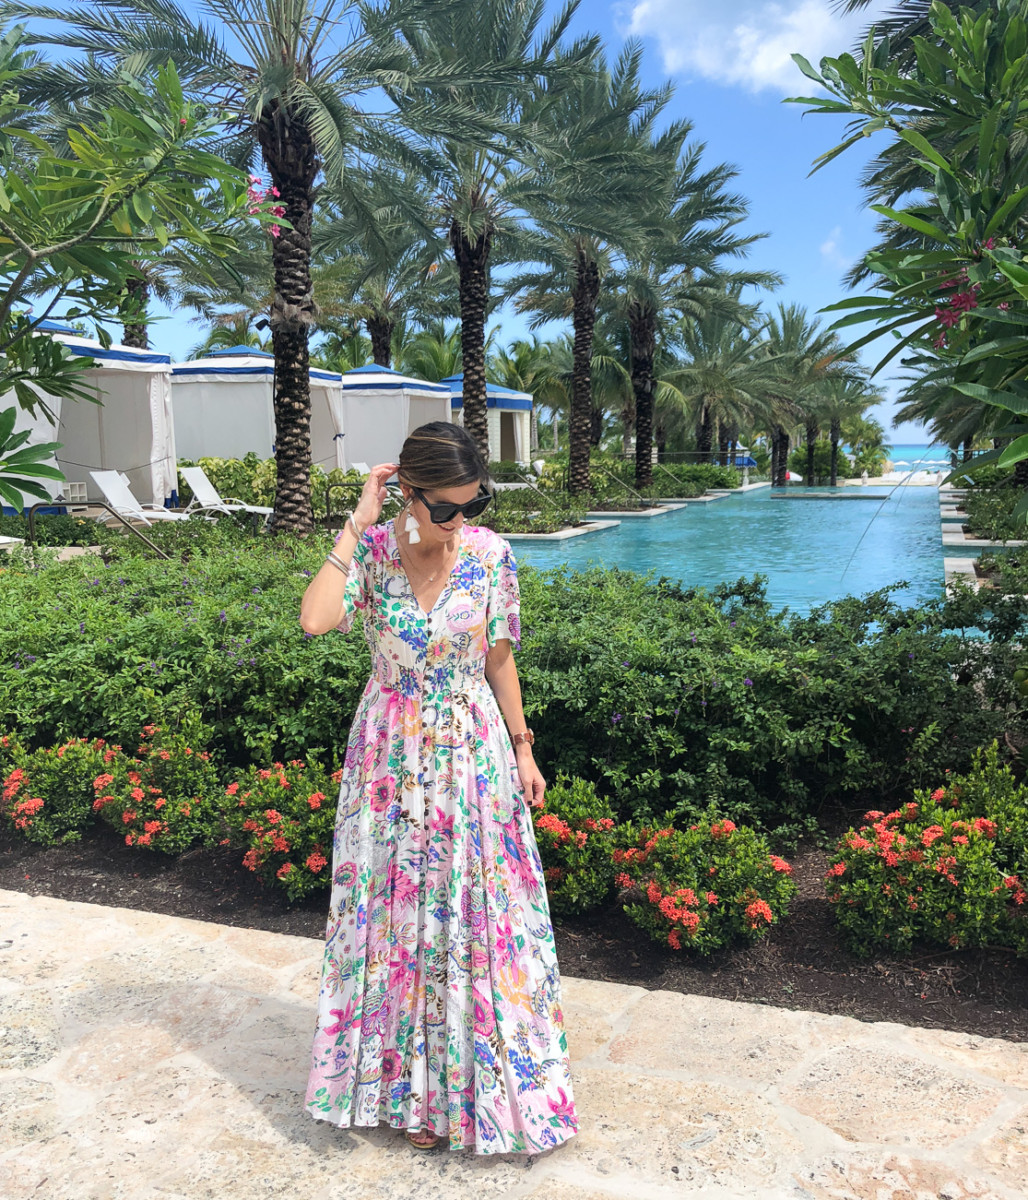 Hyatt Baha Mar Resort Review | Cobalt Chronicles | Washington, DC Travel Blogger